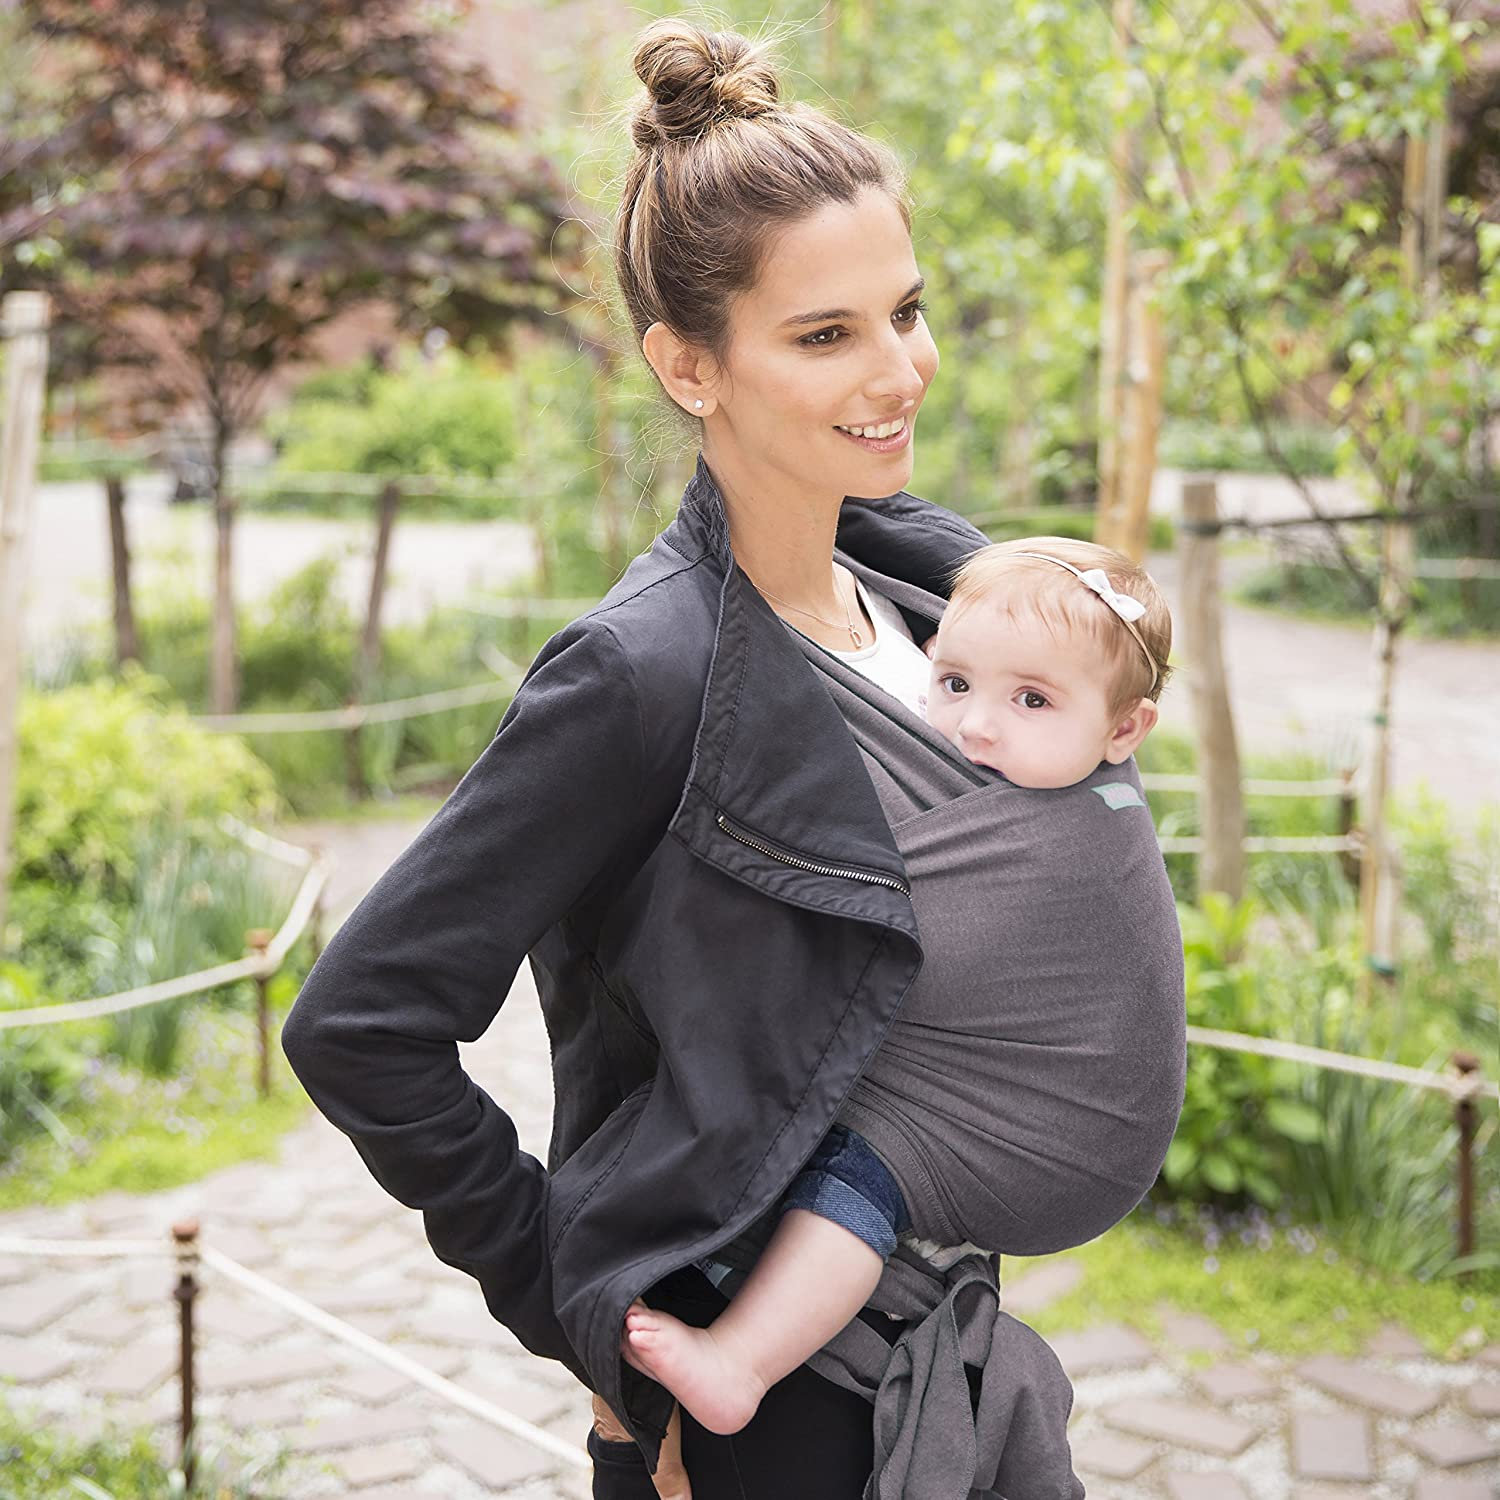 Moby Classic Baby Wrap Keeping Baby Close Baby Wrap Carrier For Newborns Infants Breastfeeding Pacific and Toddlers-Baby Carrying Wrap For Babywearing - Baby Wearing Wrap For Parents On The Go